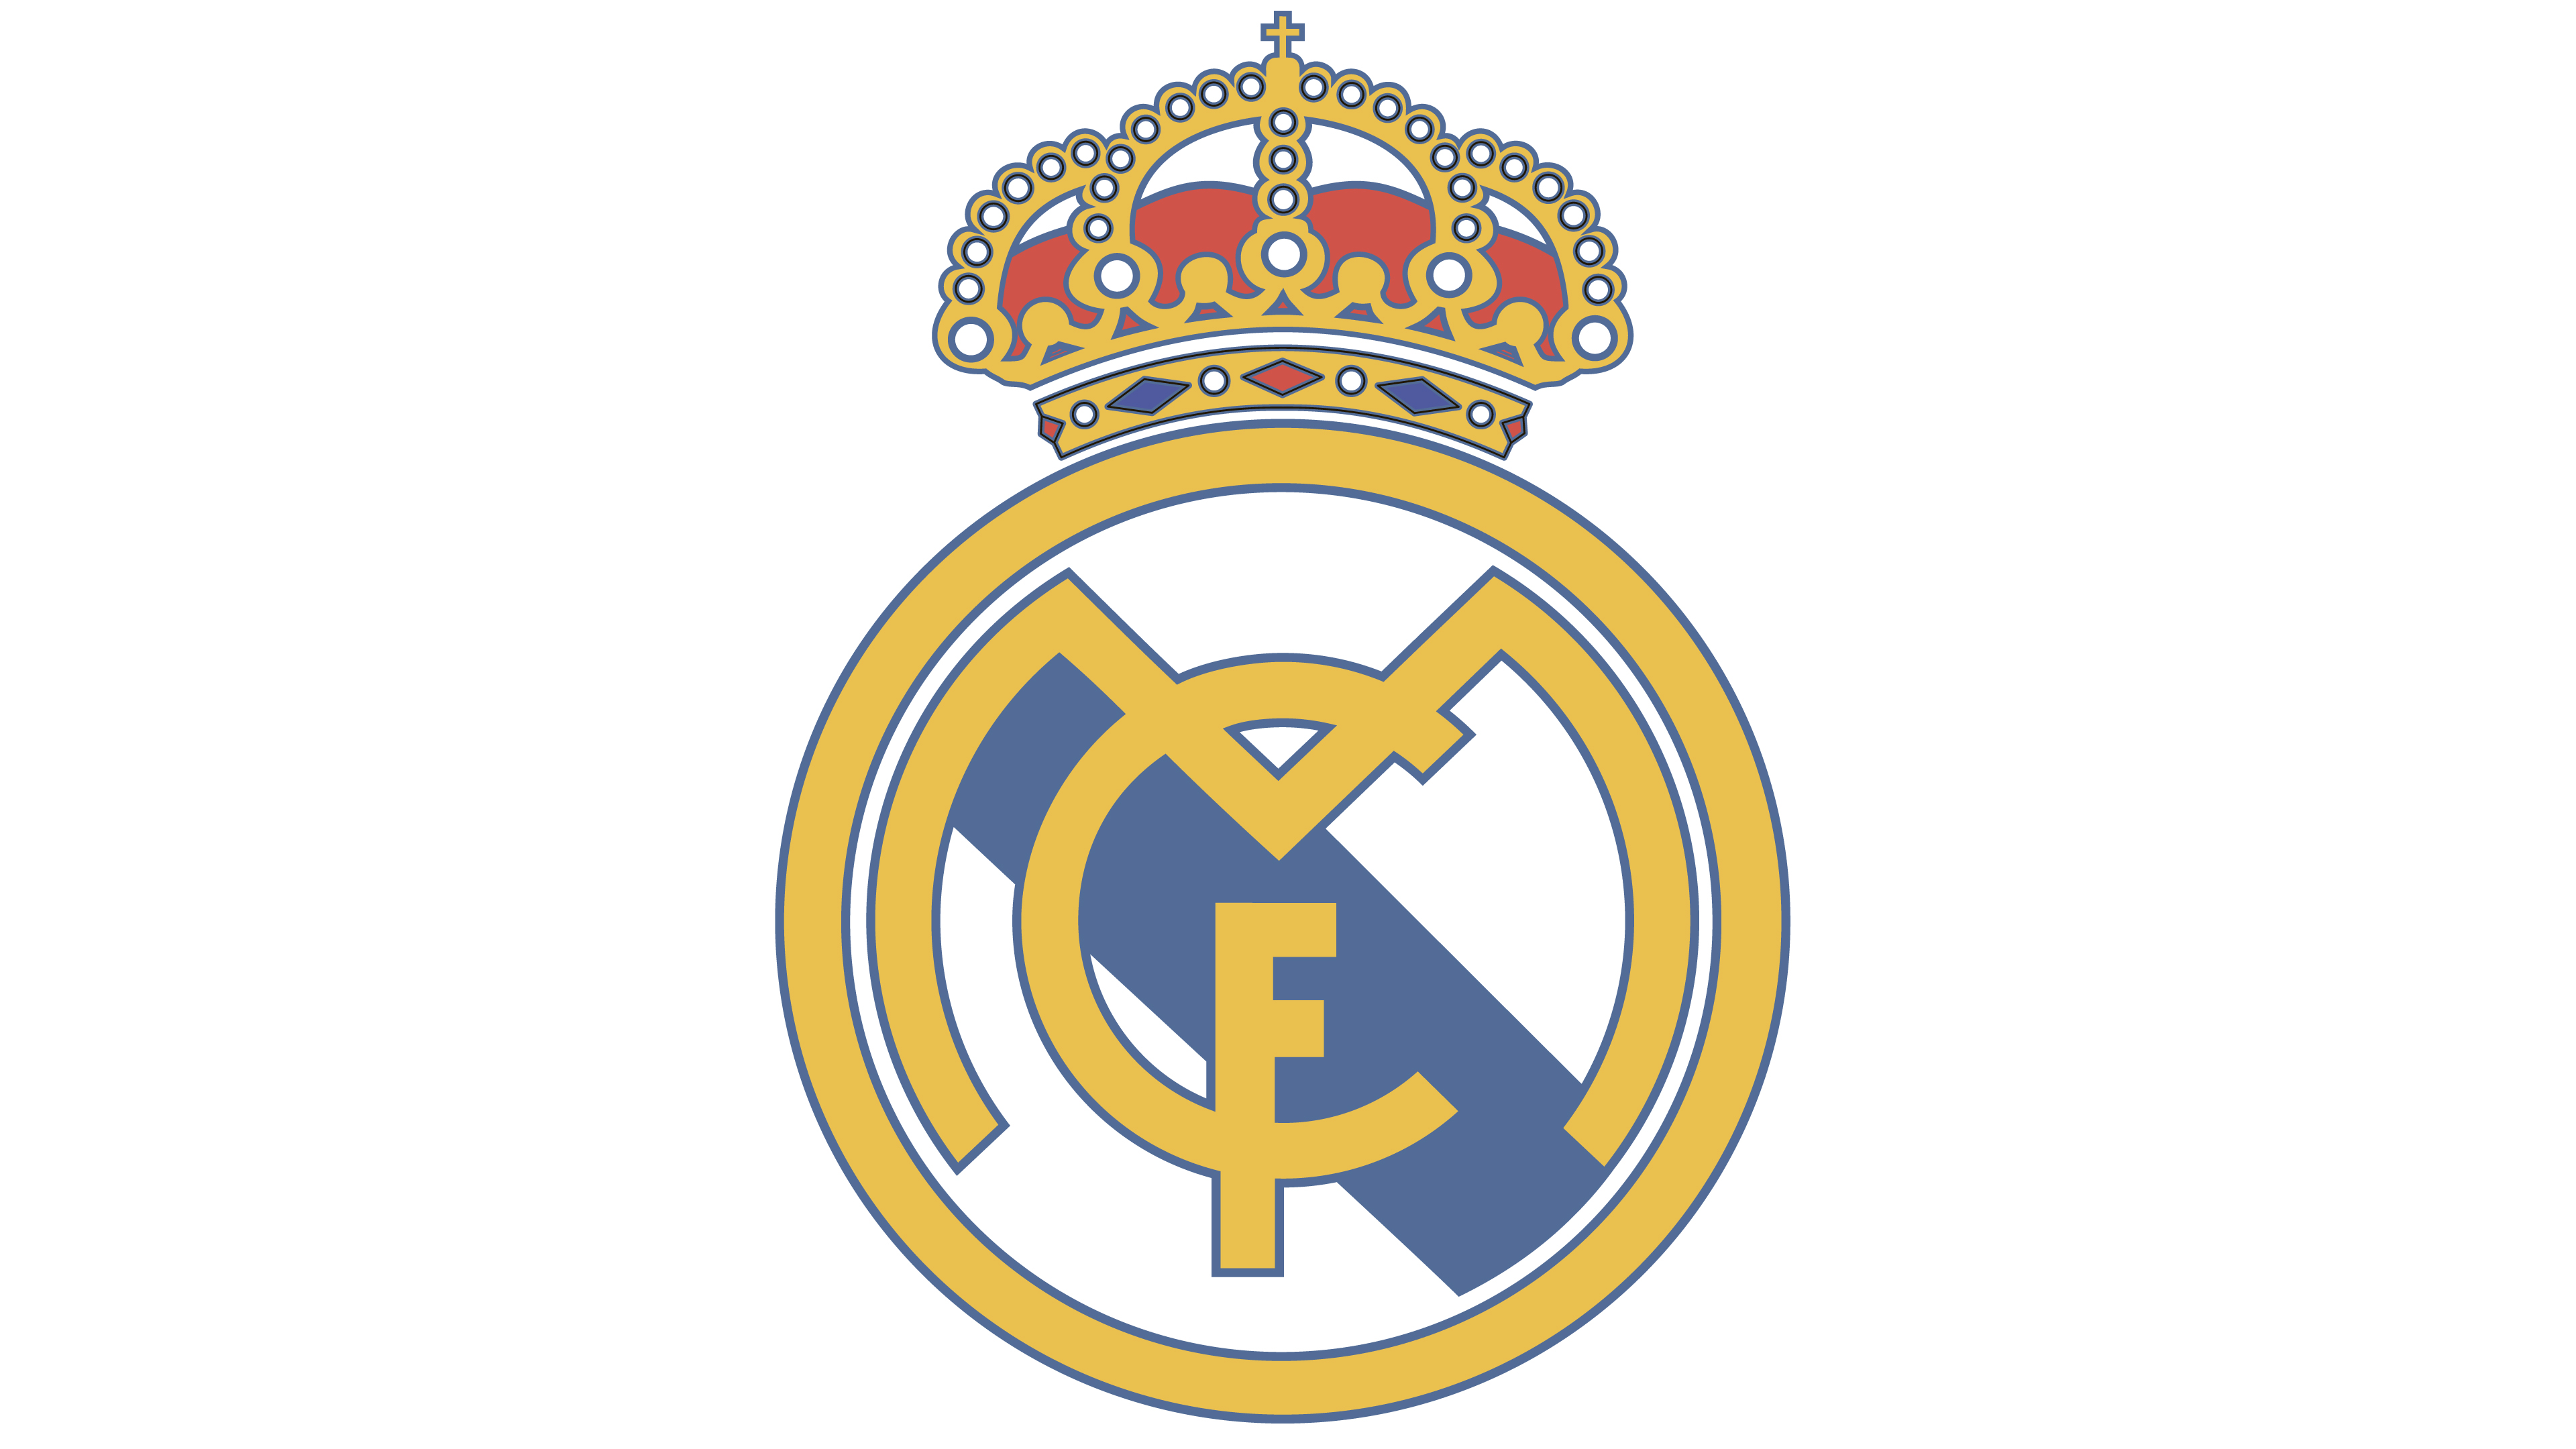 Logo del real madrid clipart jpg freeuse download Real Madrid logo - Interesting History of the Team Name and emblem jpg freeuse download